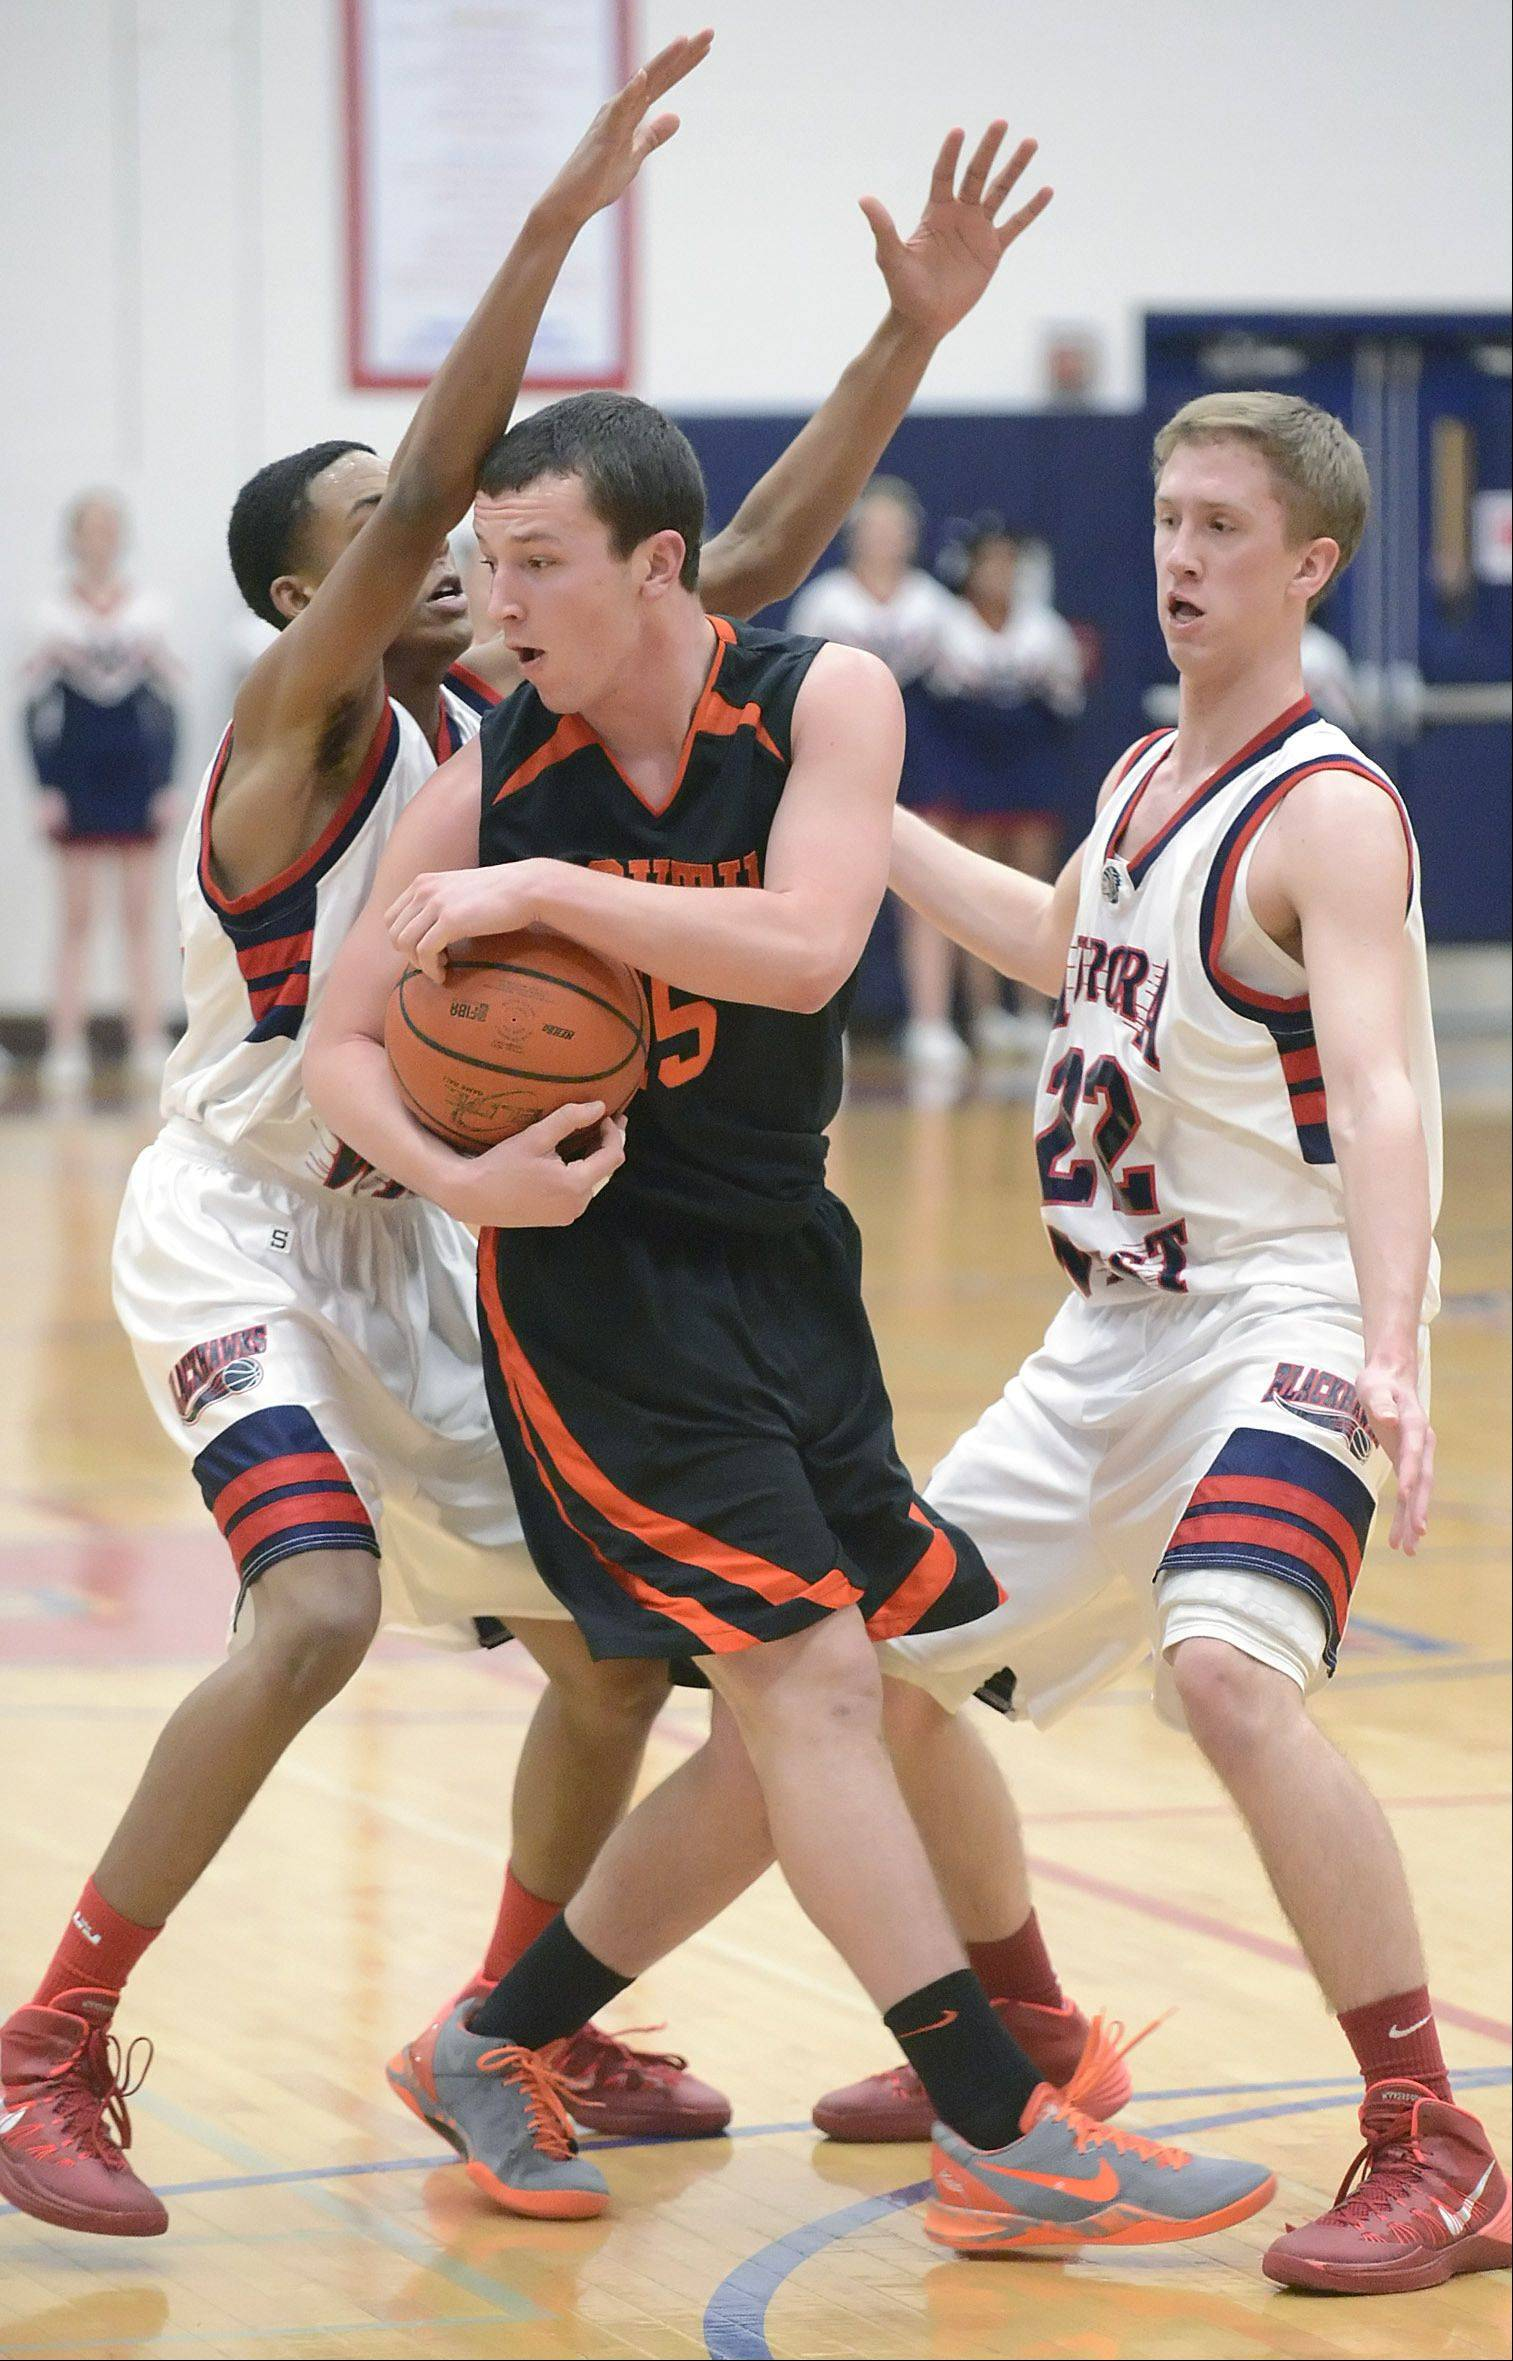 Wheaton Warrenville South�s Joe Metzger is swarmed by West Aurora�s Antwan Ahamd, left, and Tommy Koth, right, in the third quarter on Tuesday, February 4.